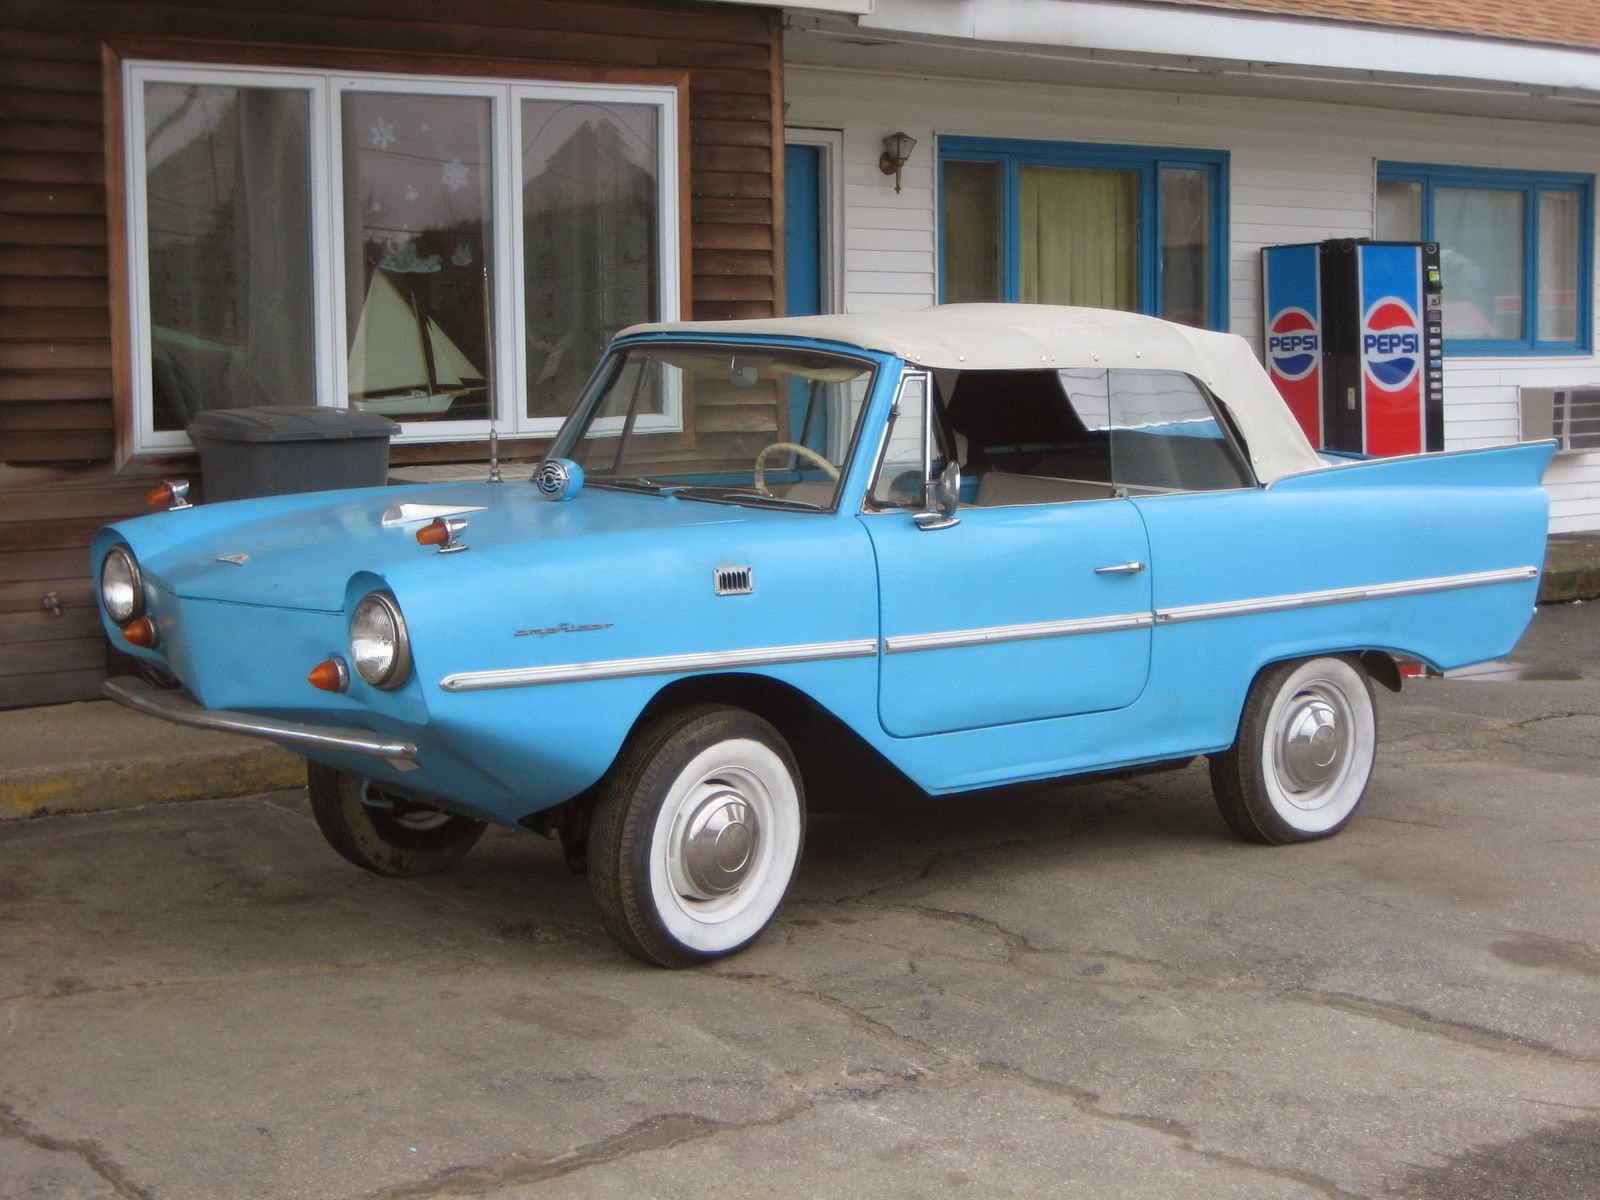 Daily Turismo: DTO: Floatel 6: 1967 Amphicar